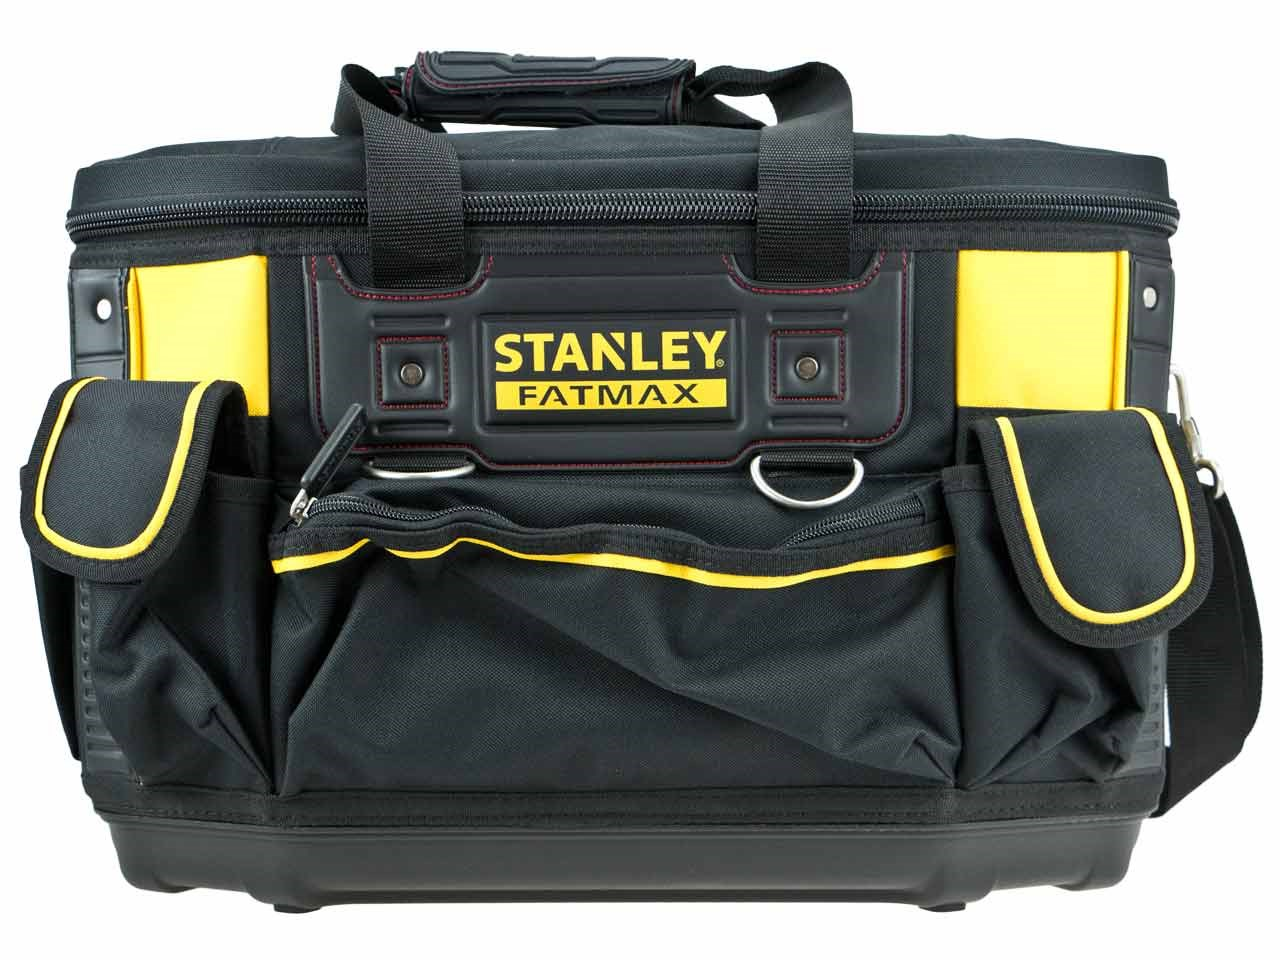 stanley fmst1 70749 fatmax rigid top tool bag. Black Bedroom Furniture Sets. Home Design Ideas